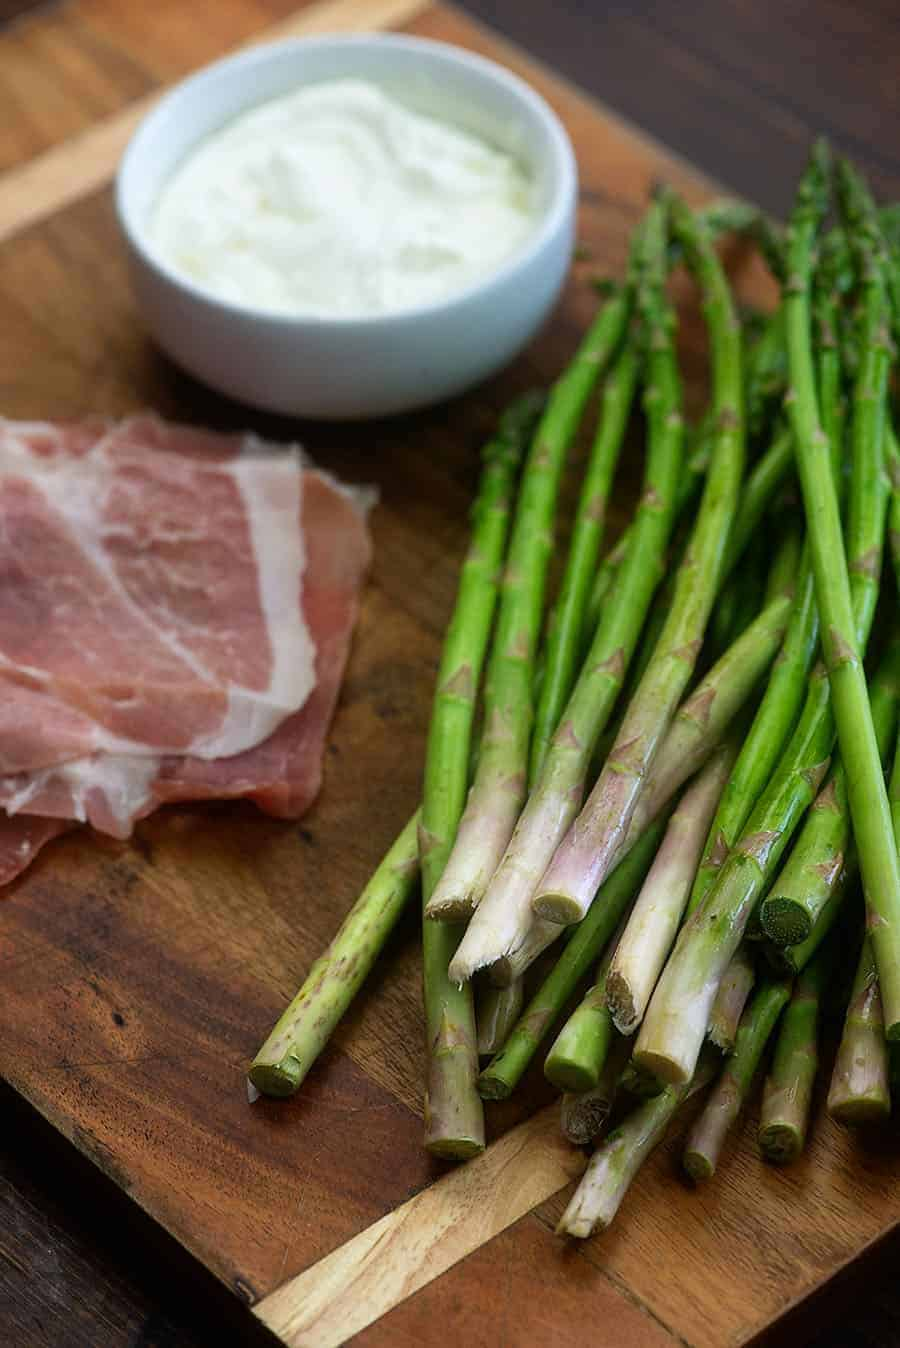 ingredients for prosciutto wrapped asparagus on wooden cutting board